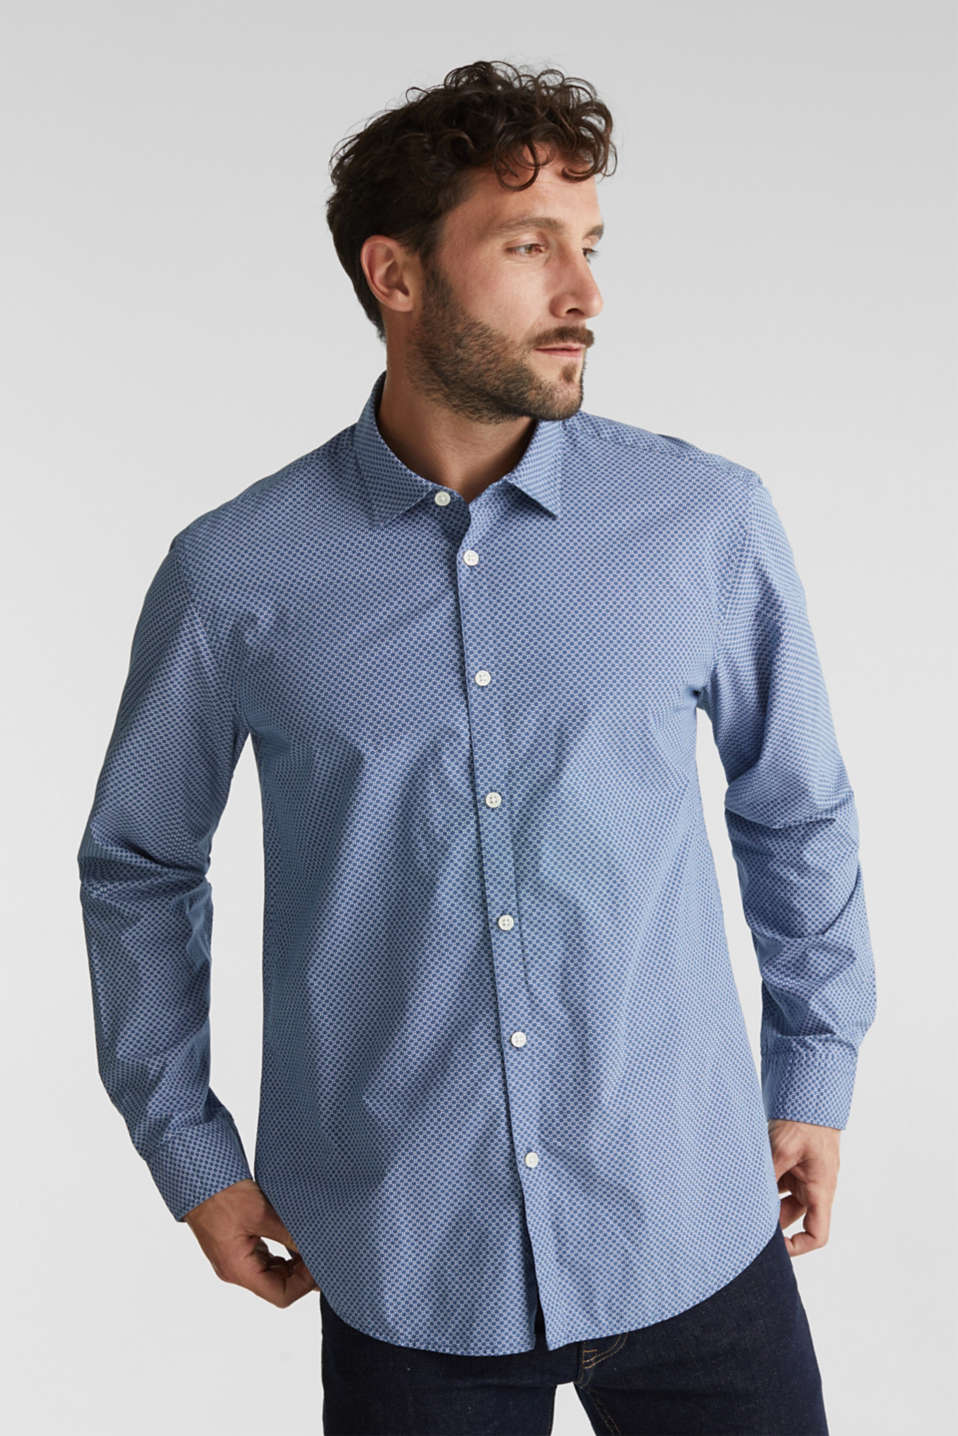 Esprit - Print shirt made of 100% organic